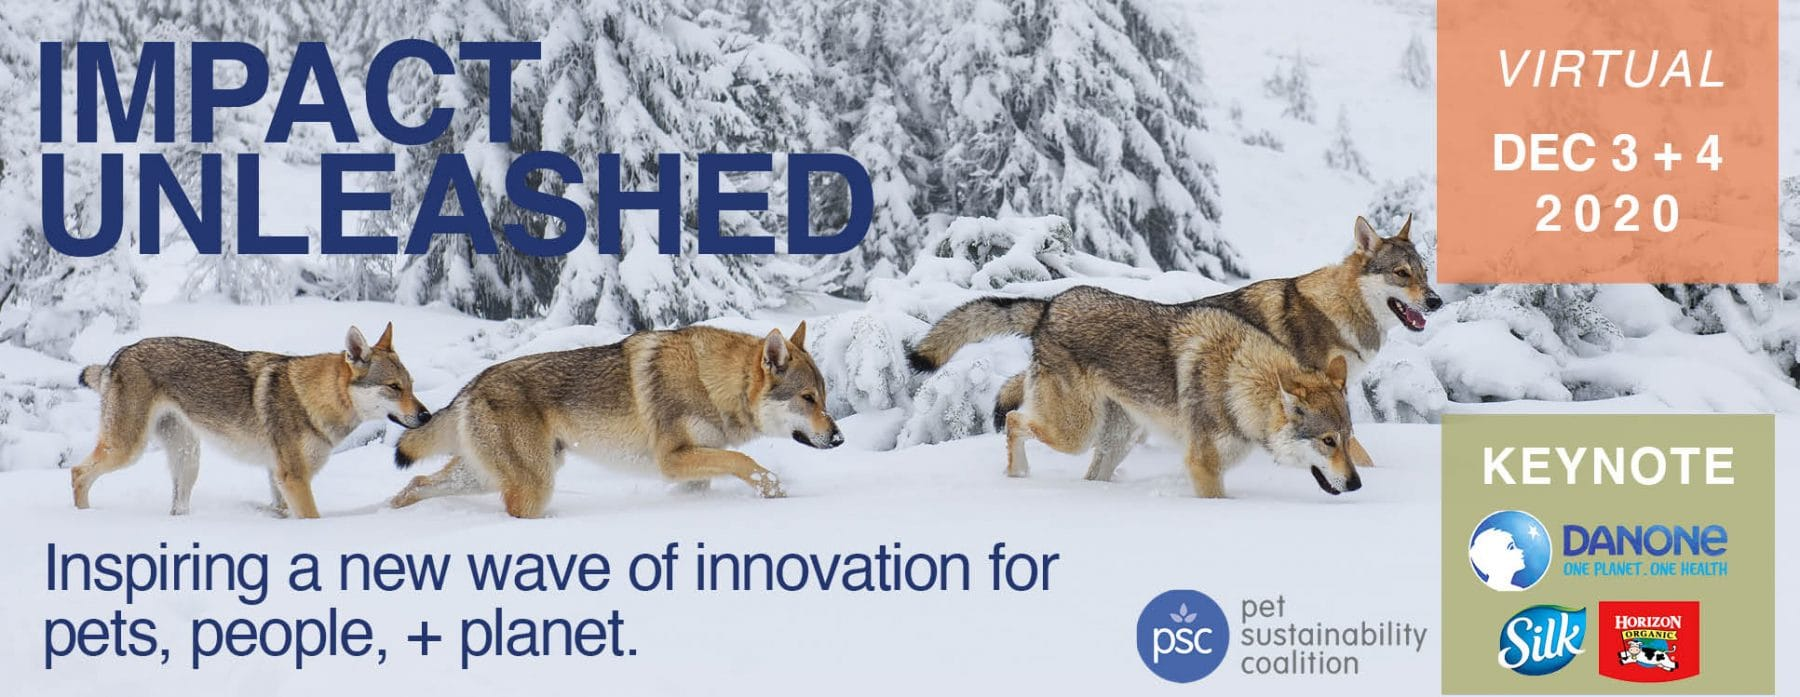 PSC's 4th Annual Pet Business Sustainability Event, Impact Unleashed, Goes Virtual